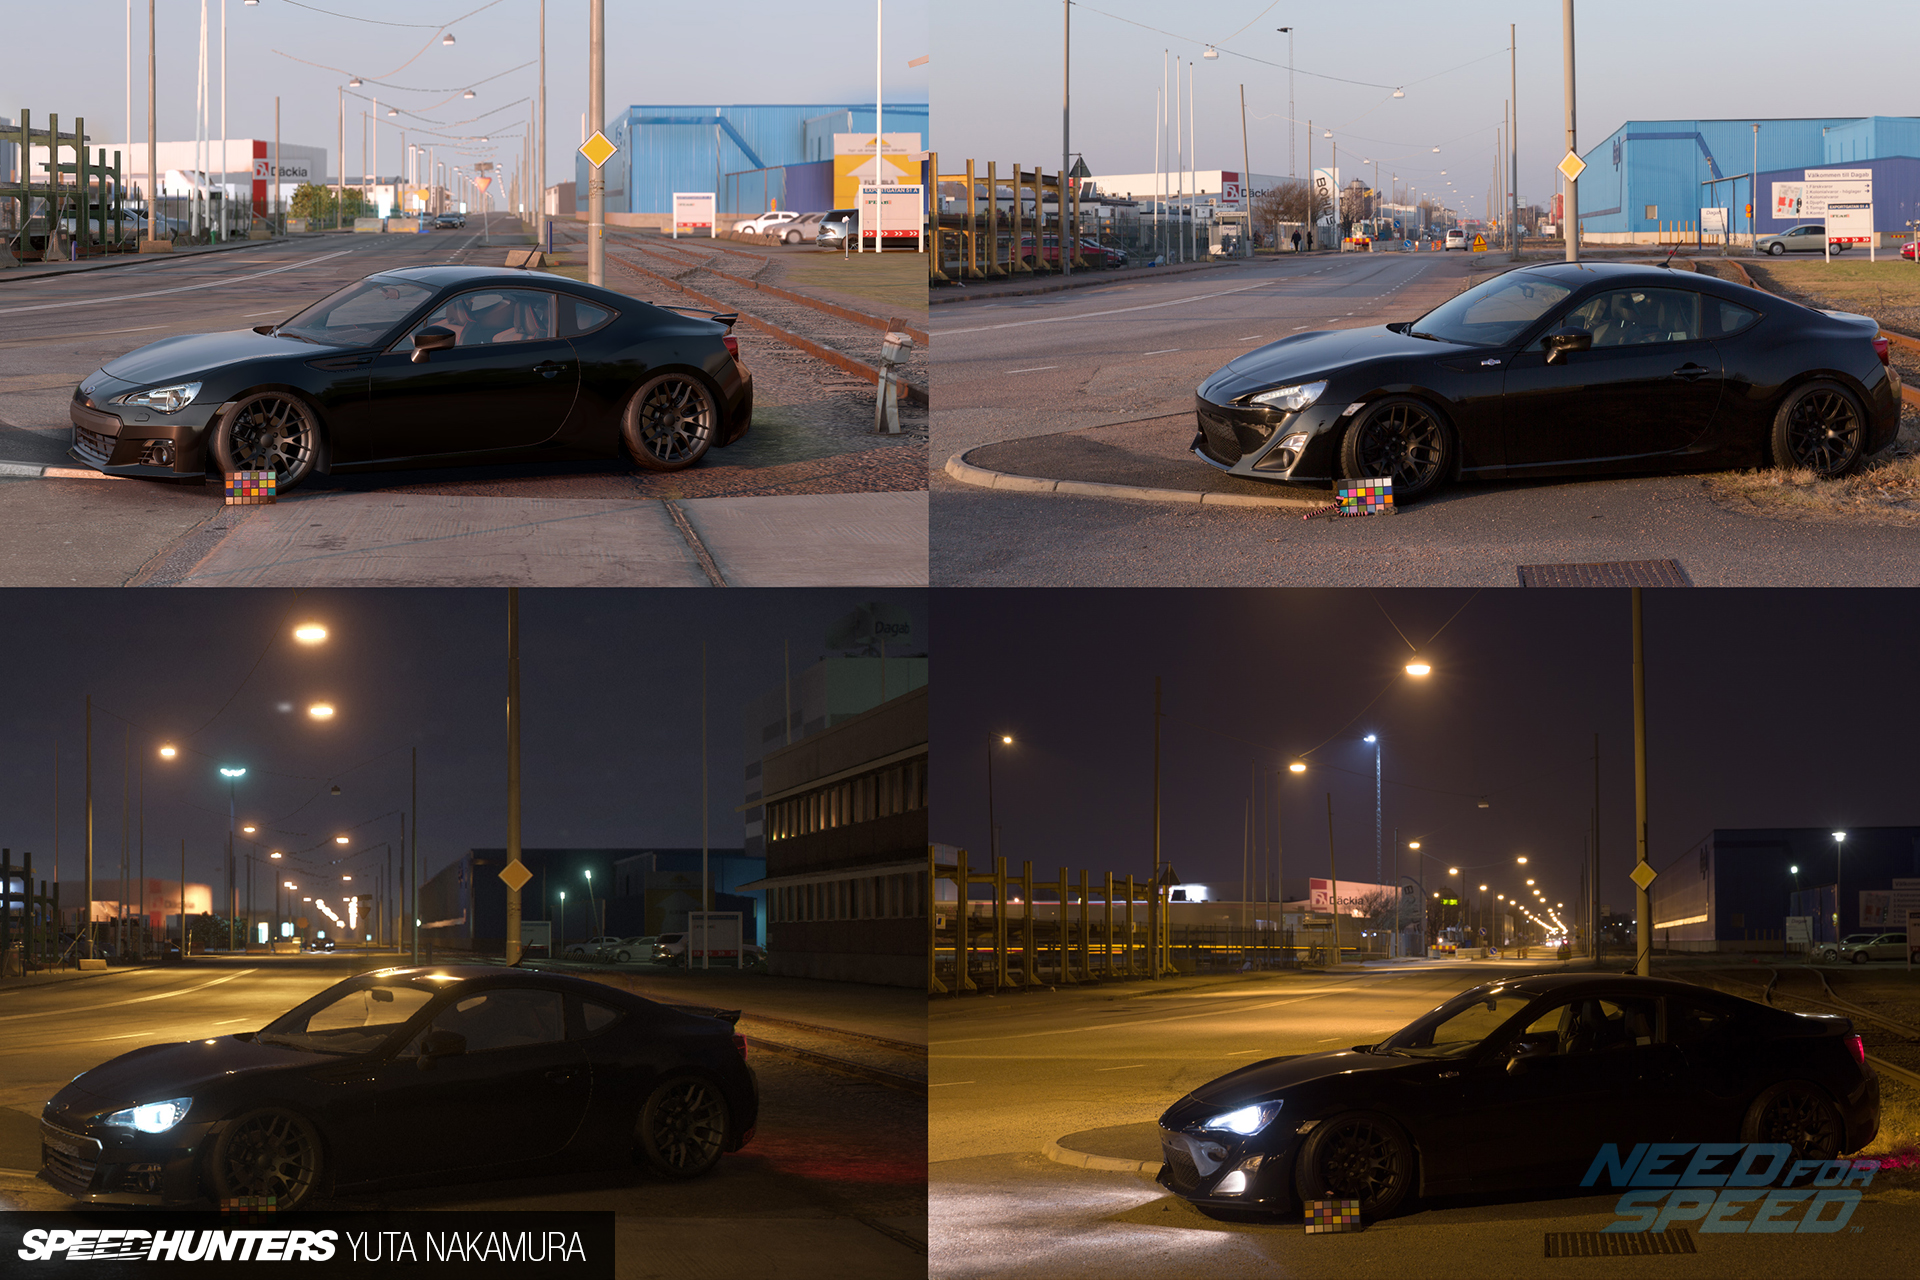 Mira los autos de Need for Speed contra los de la vida real - LevelUp